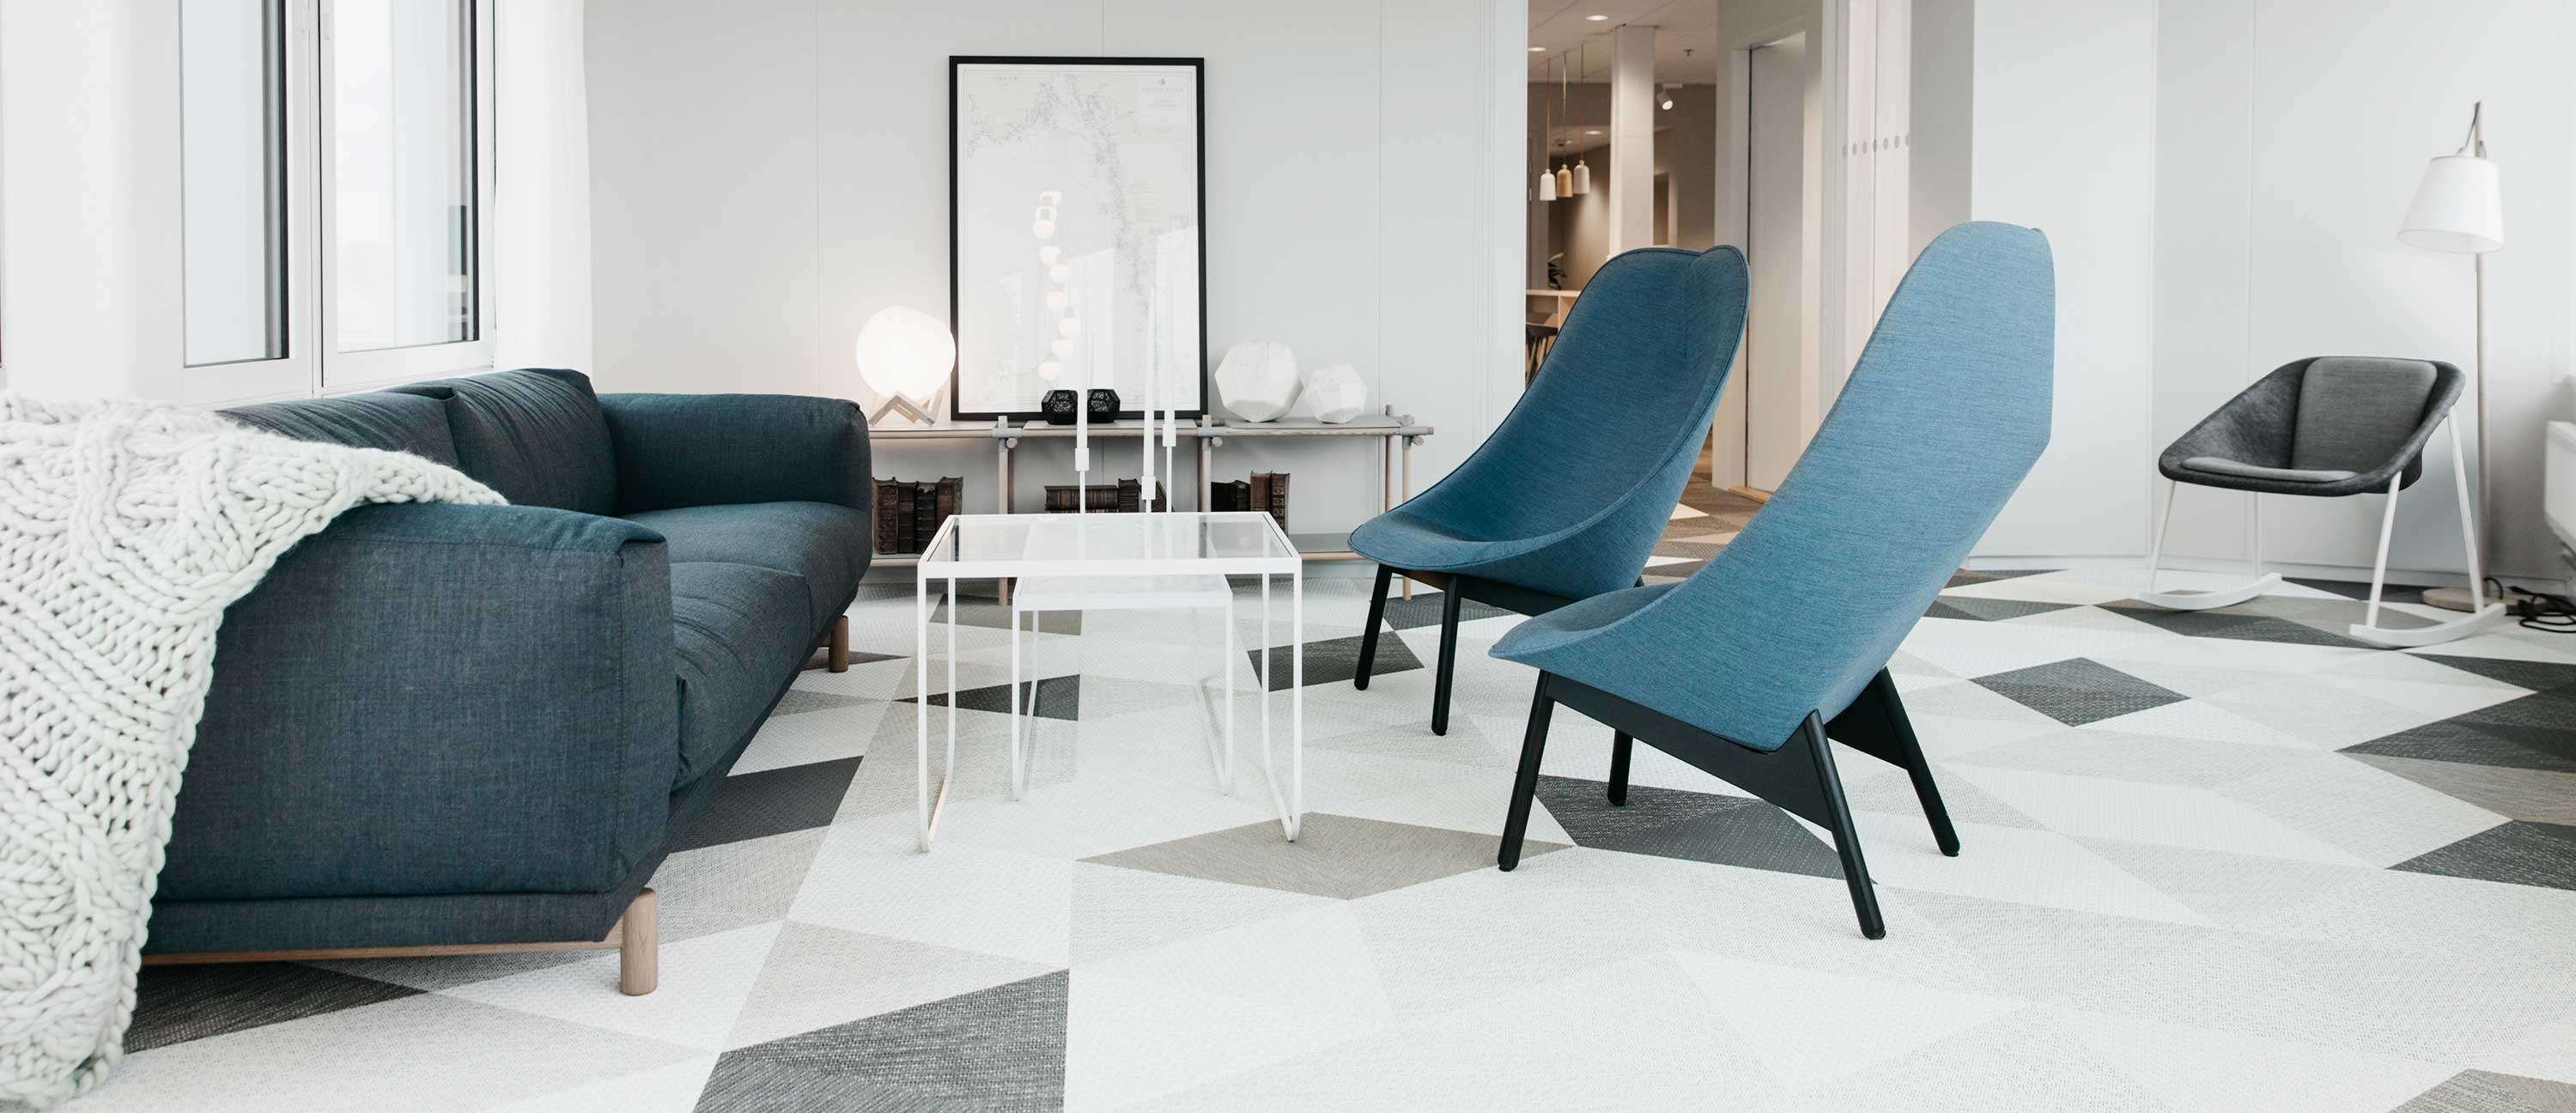 Bolon flooring in the office of law firm Glimstedt in Gothenburg